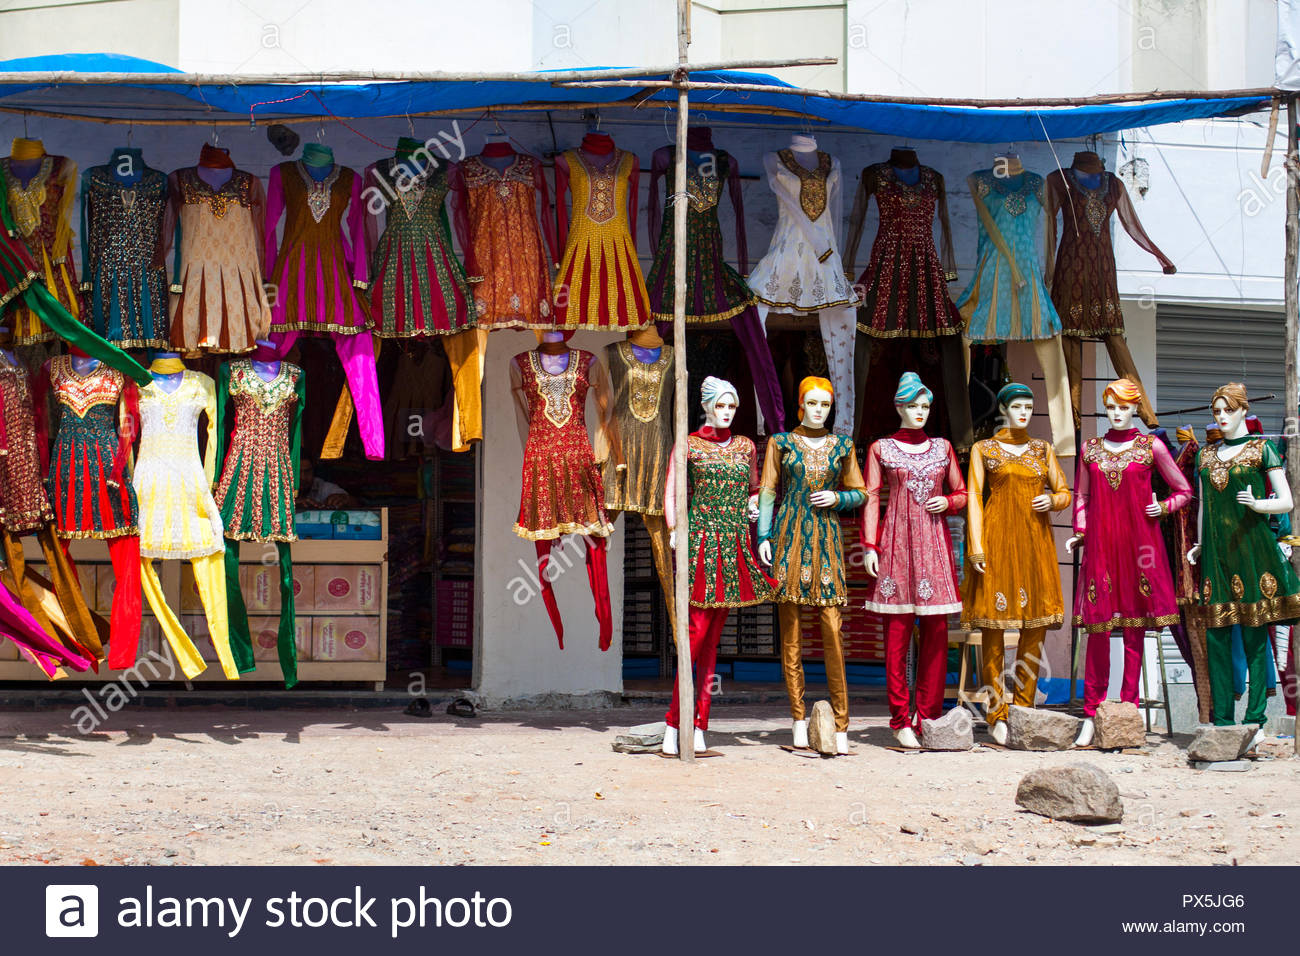 51129825 Salwar kameez shop in Hyderabad, Andhra Pradesh, India - Stock Image